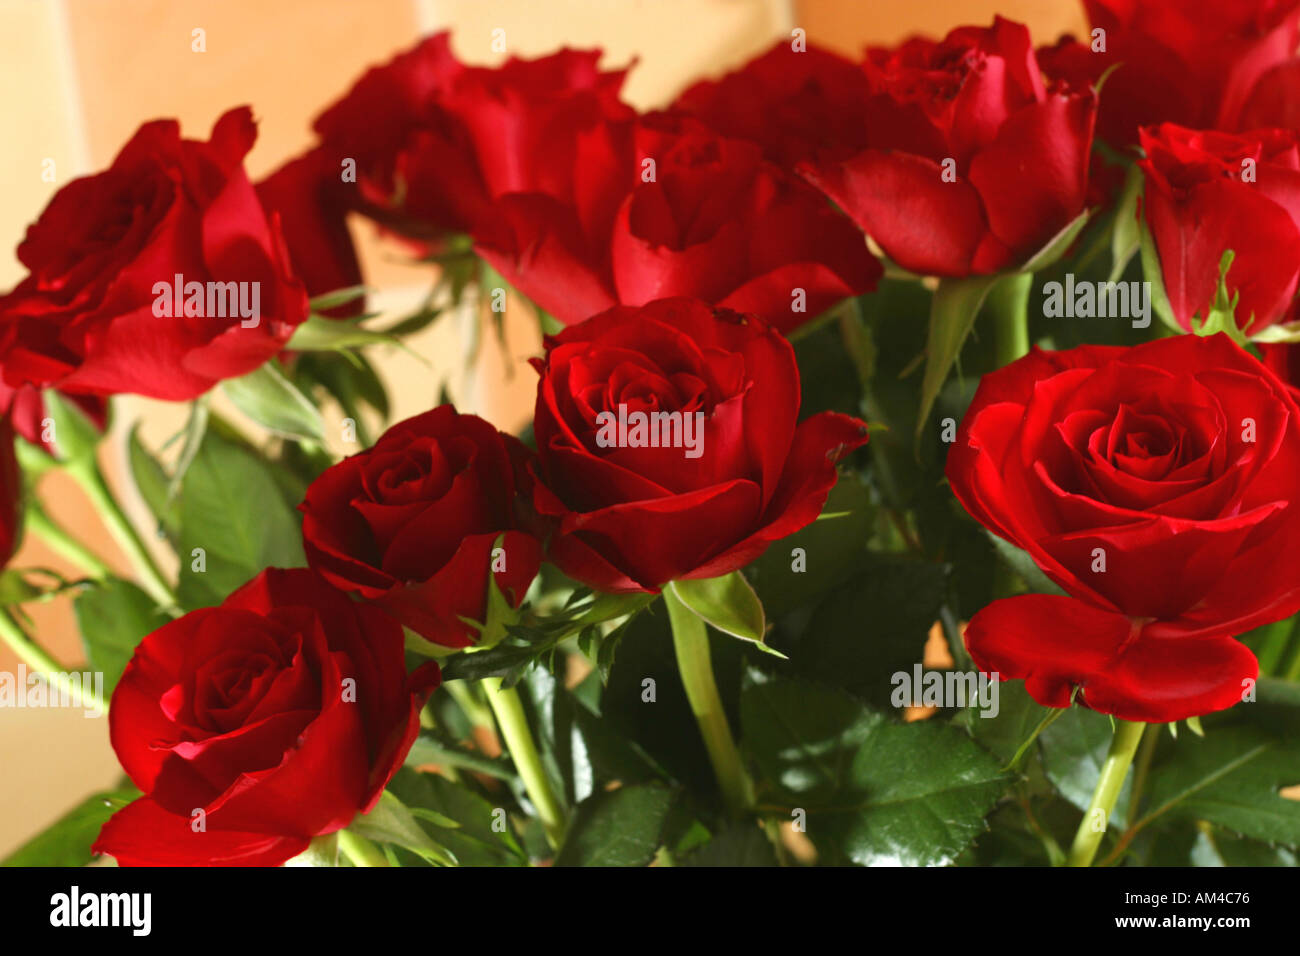 Bunch of red roses symbol of love stock photo 1330293 alamy bunch of red roses symbol of love buycottarizona